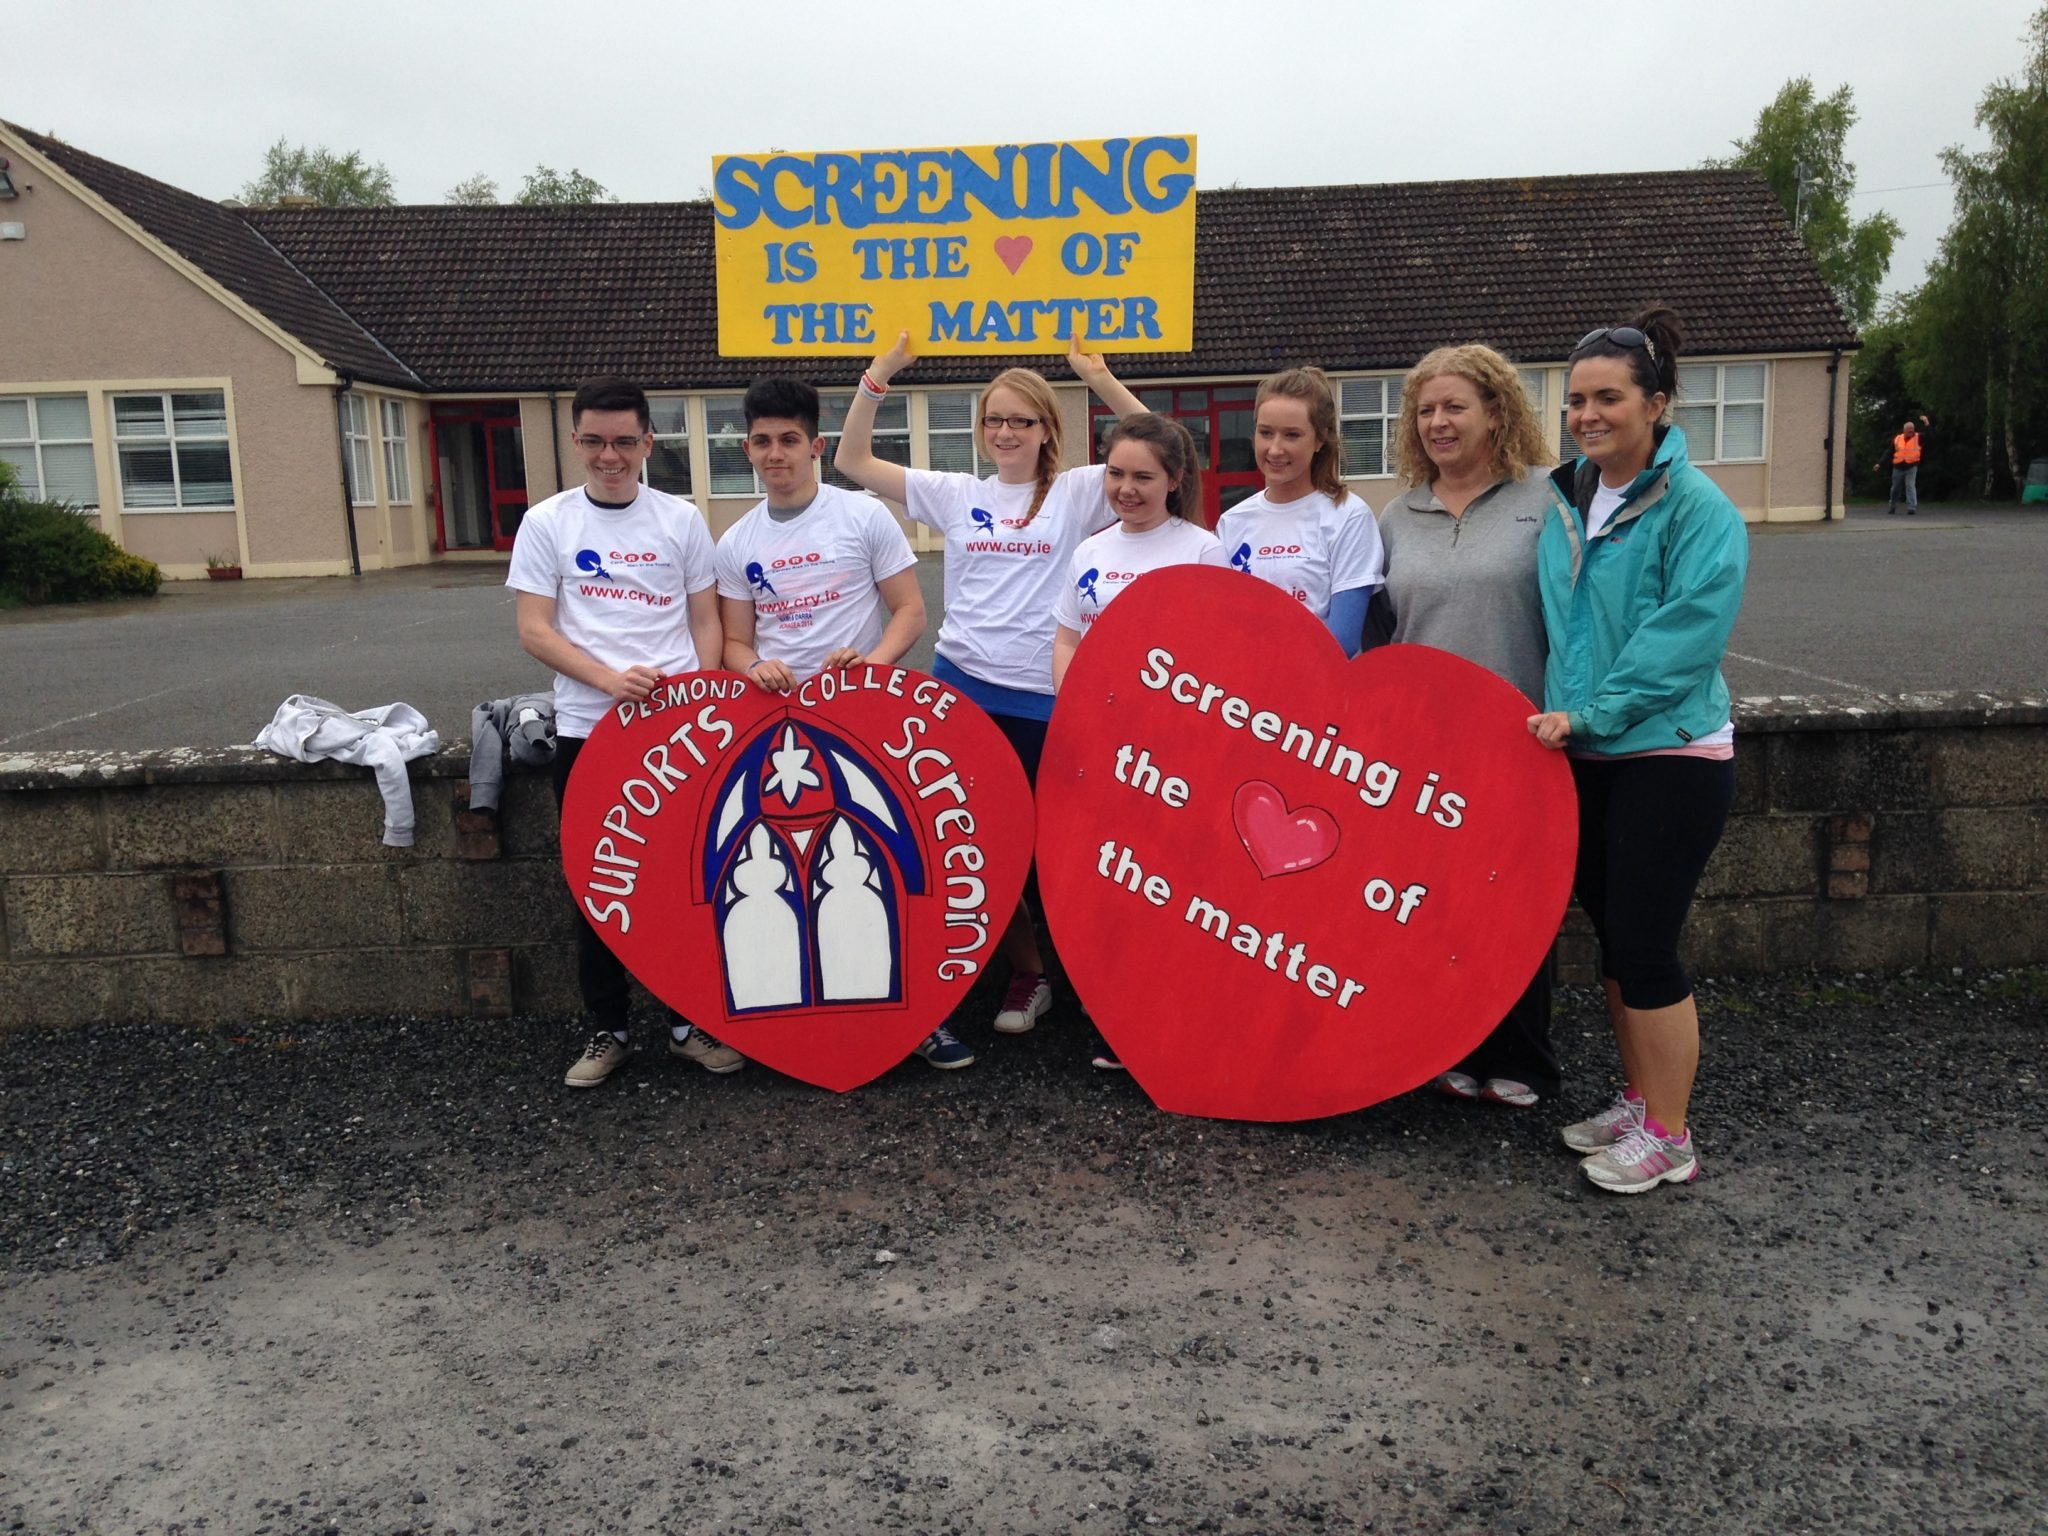 Desmond College Students ready to go! For the Newcastlwest CRY Walk/Run May 2014